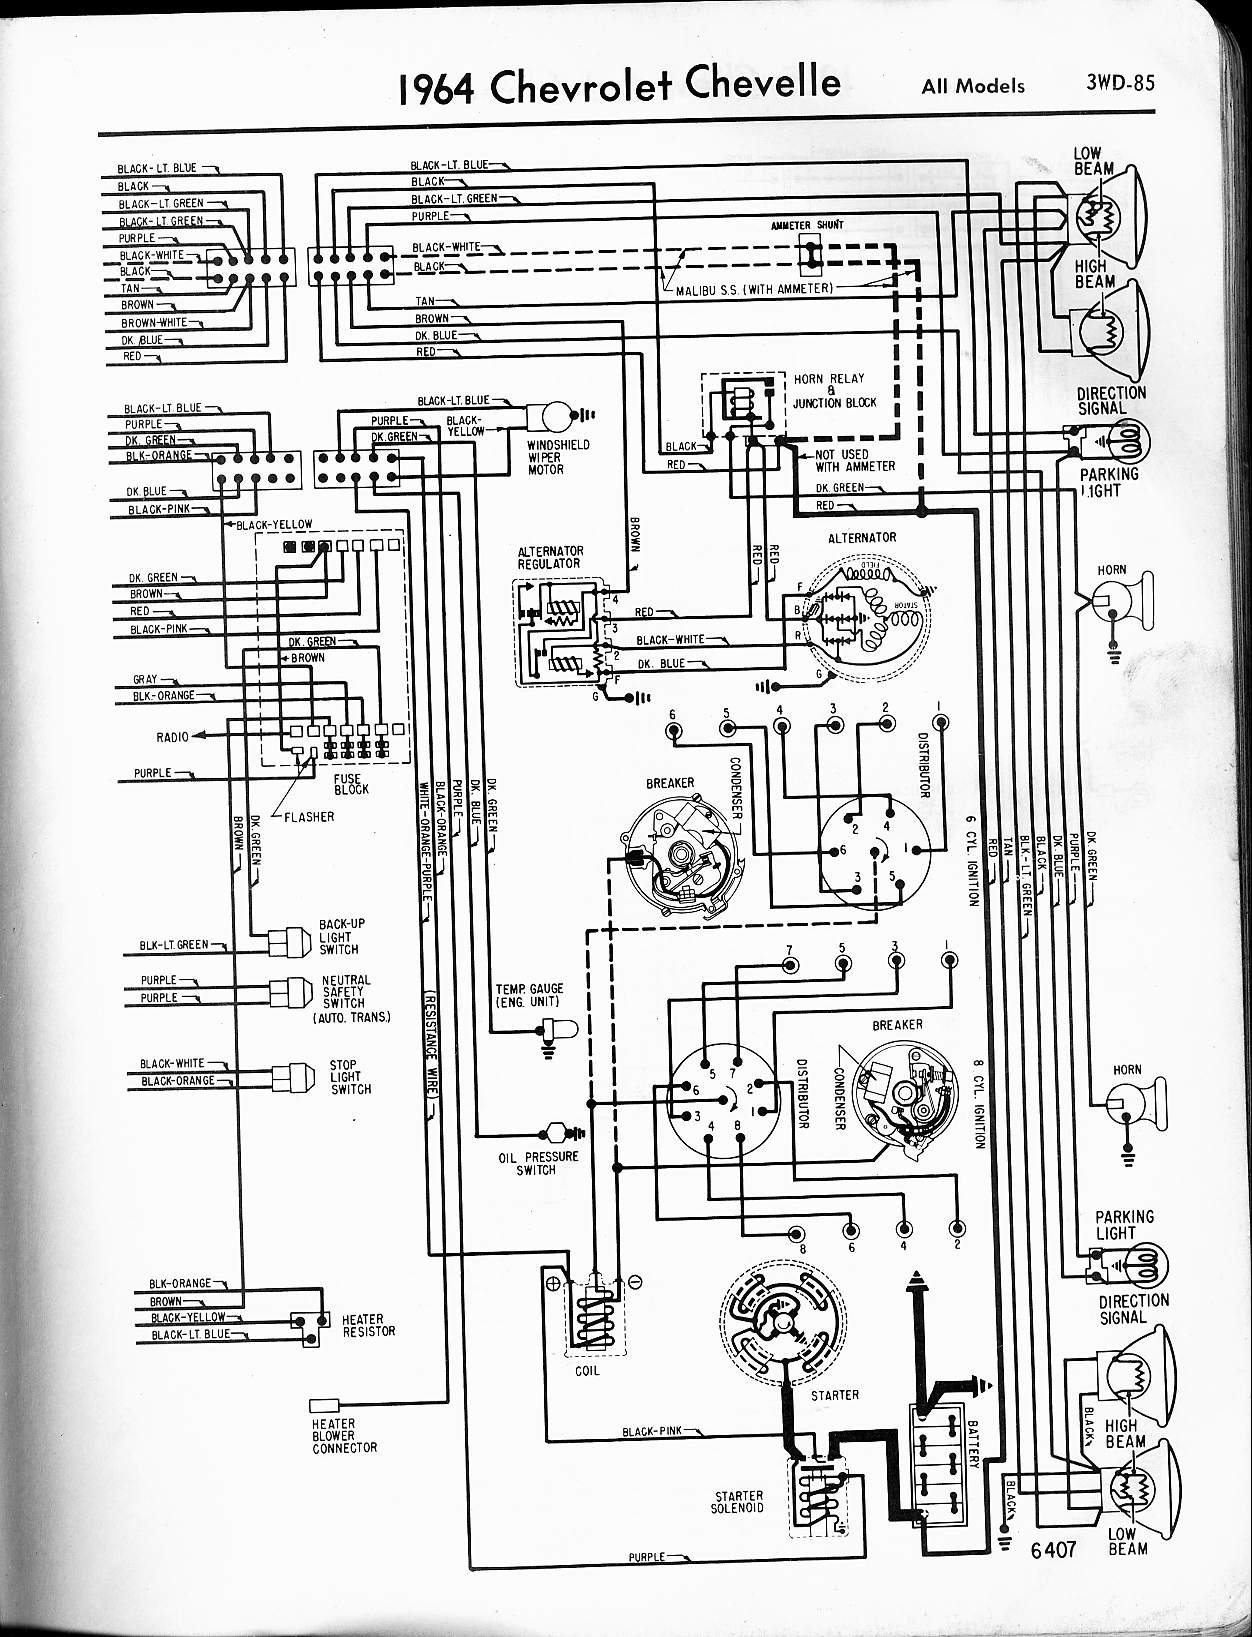 MWireChev64_3WD 085 chevy diagrams 1969 chevelle wiring harness at gsmx.co